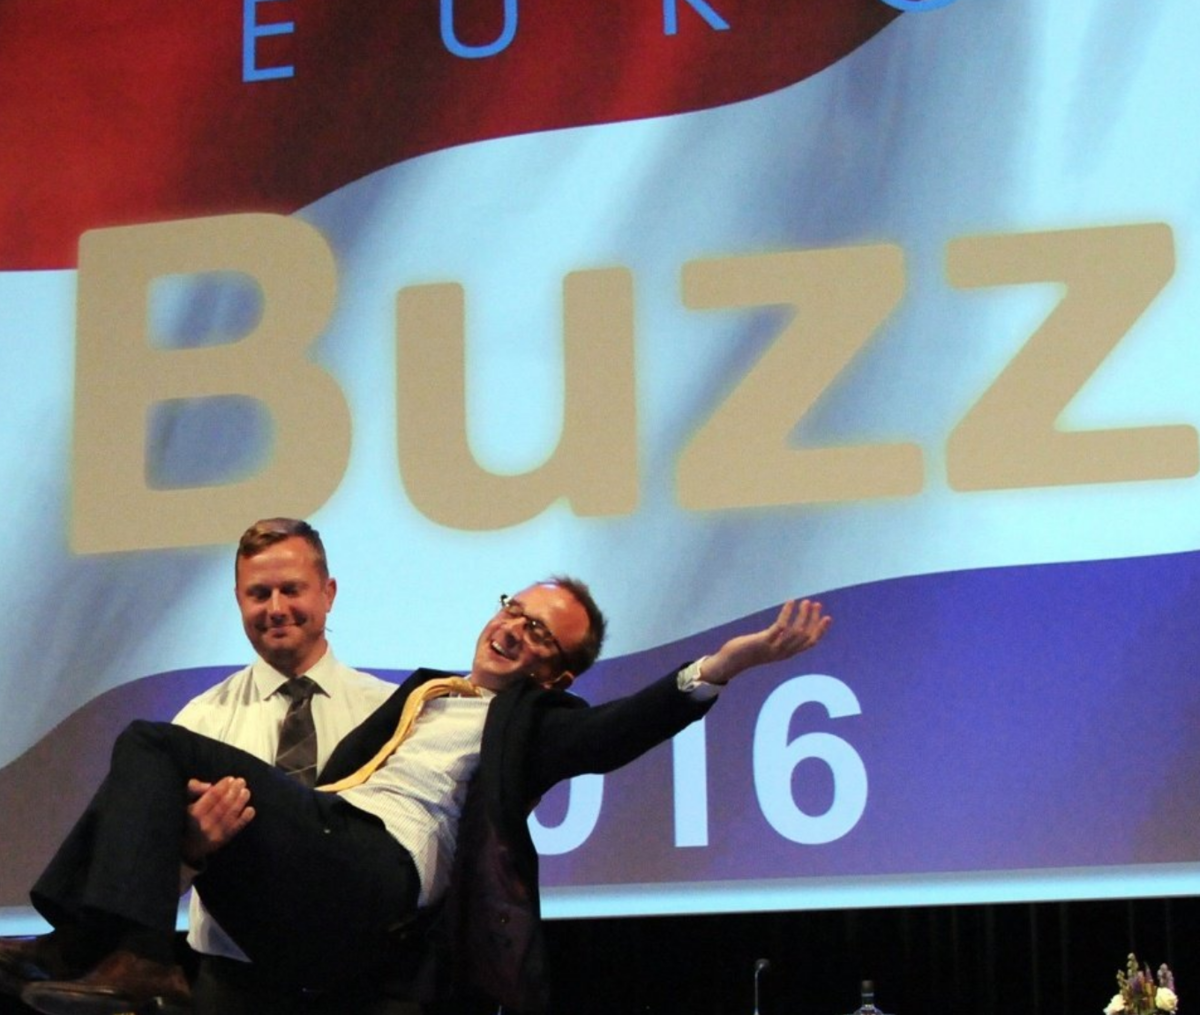 Jeff and Ed offered their on-stage roundup, EuroBuzz 2016